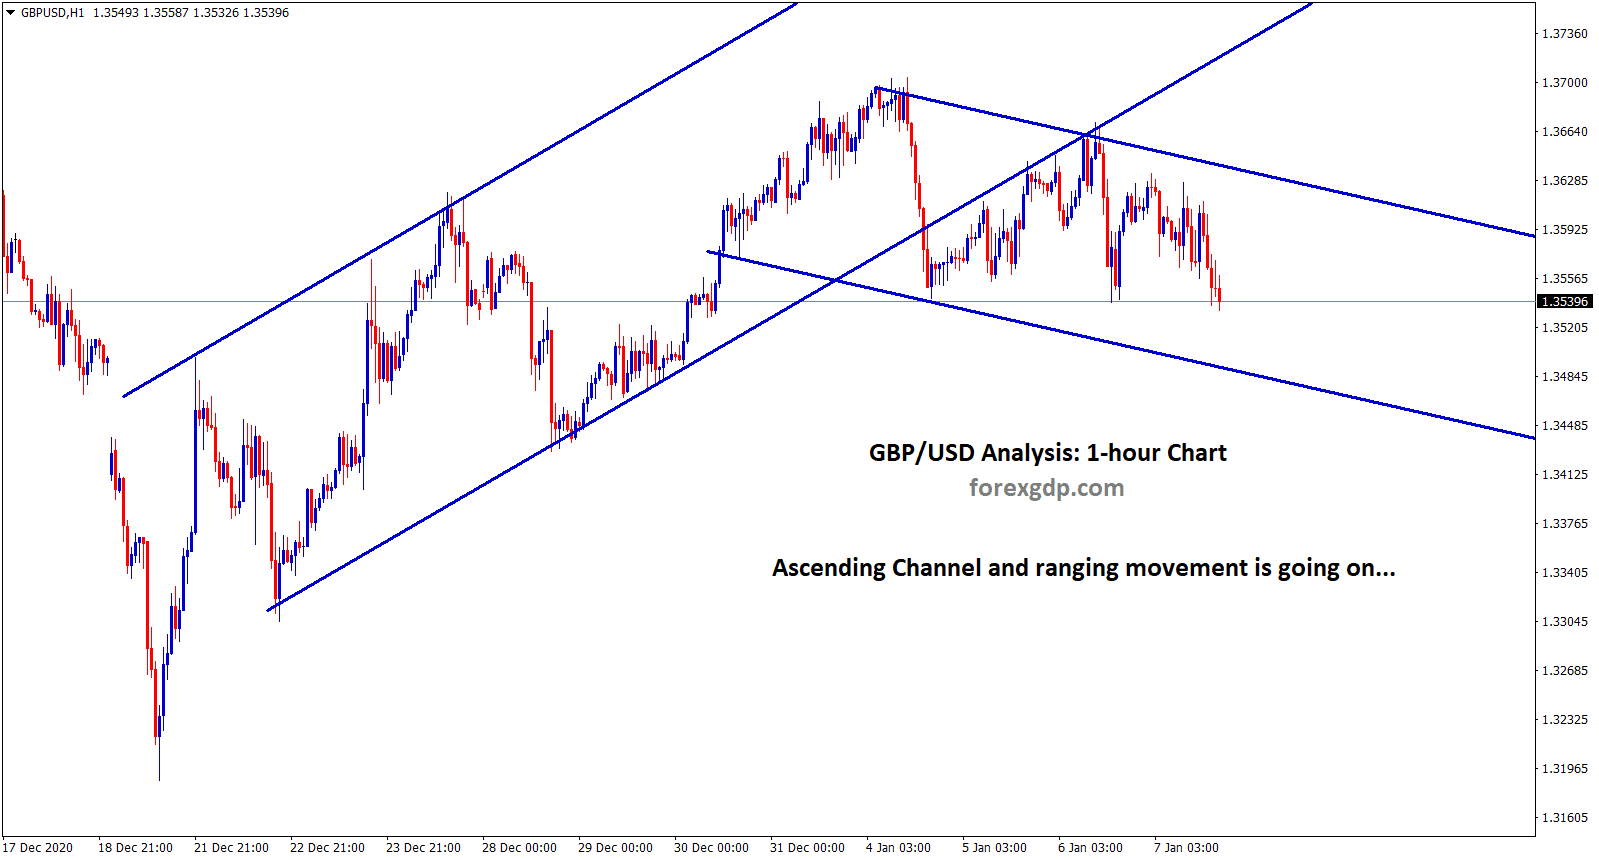 gbpusd ascending and ranging movement going on